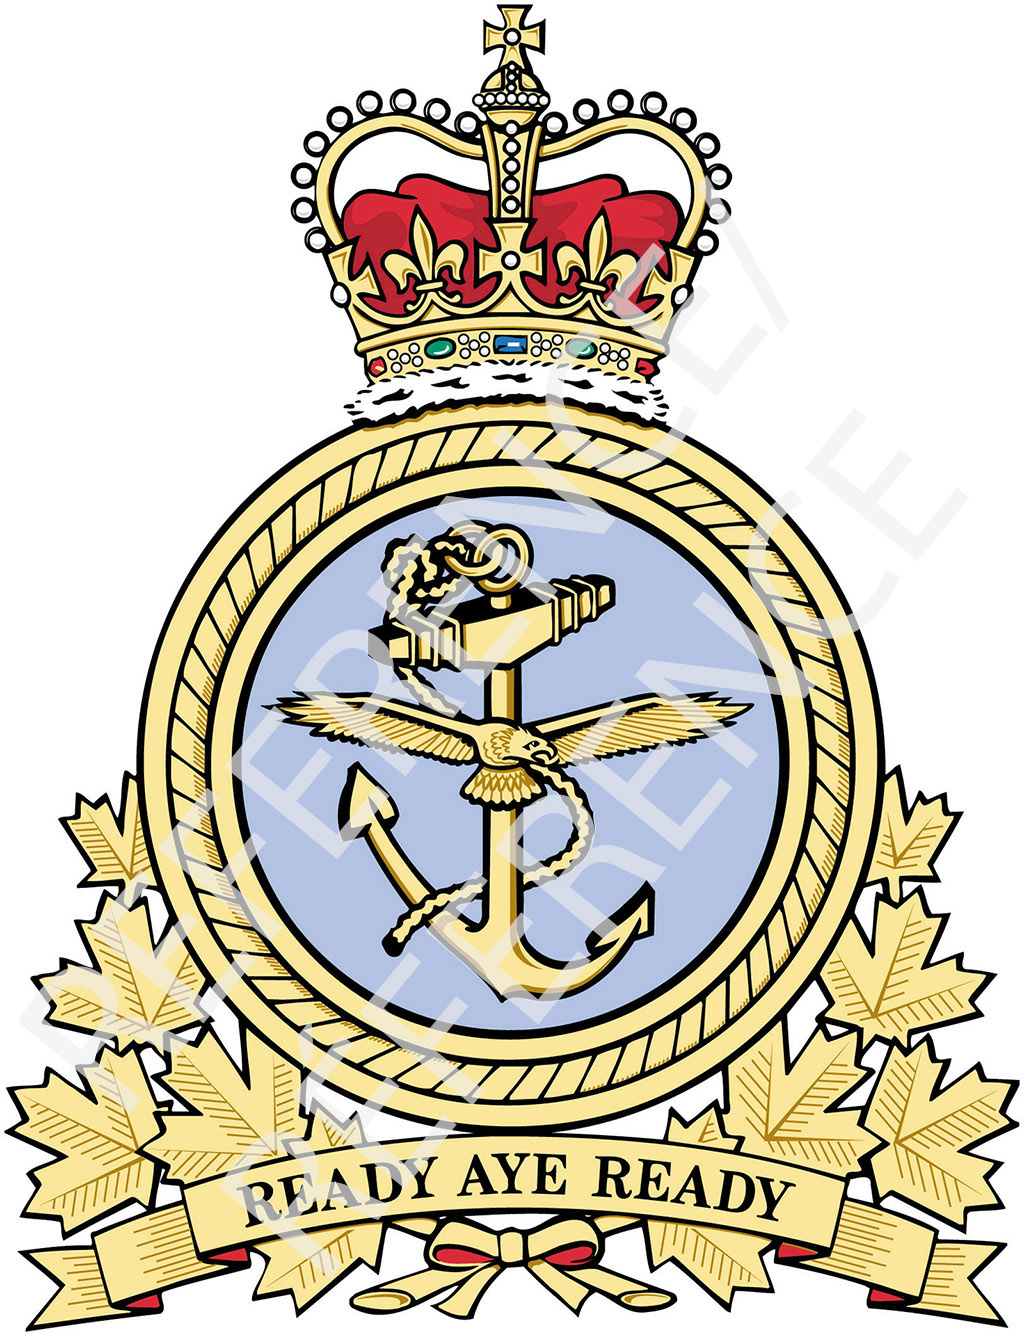 The former RCN command badge.